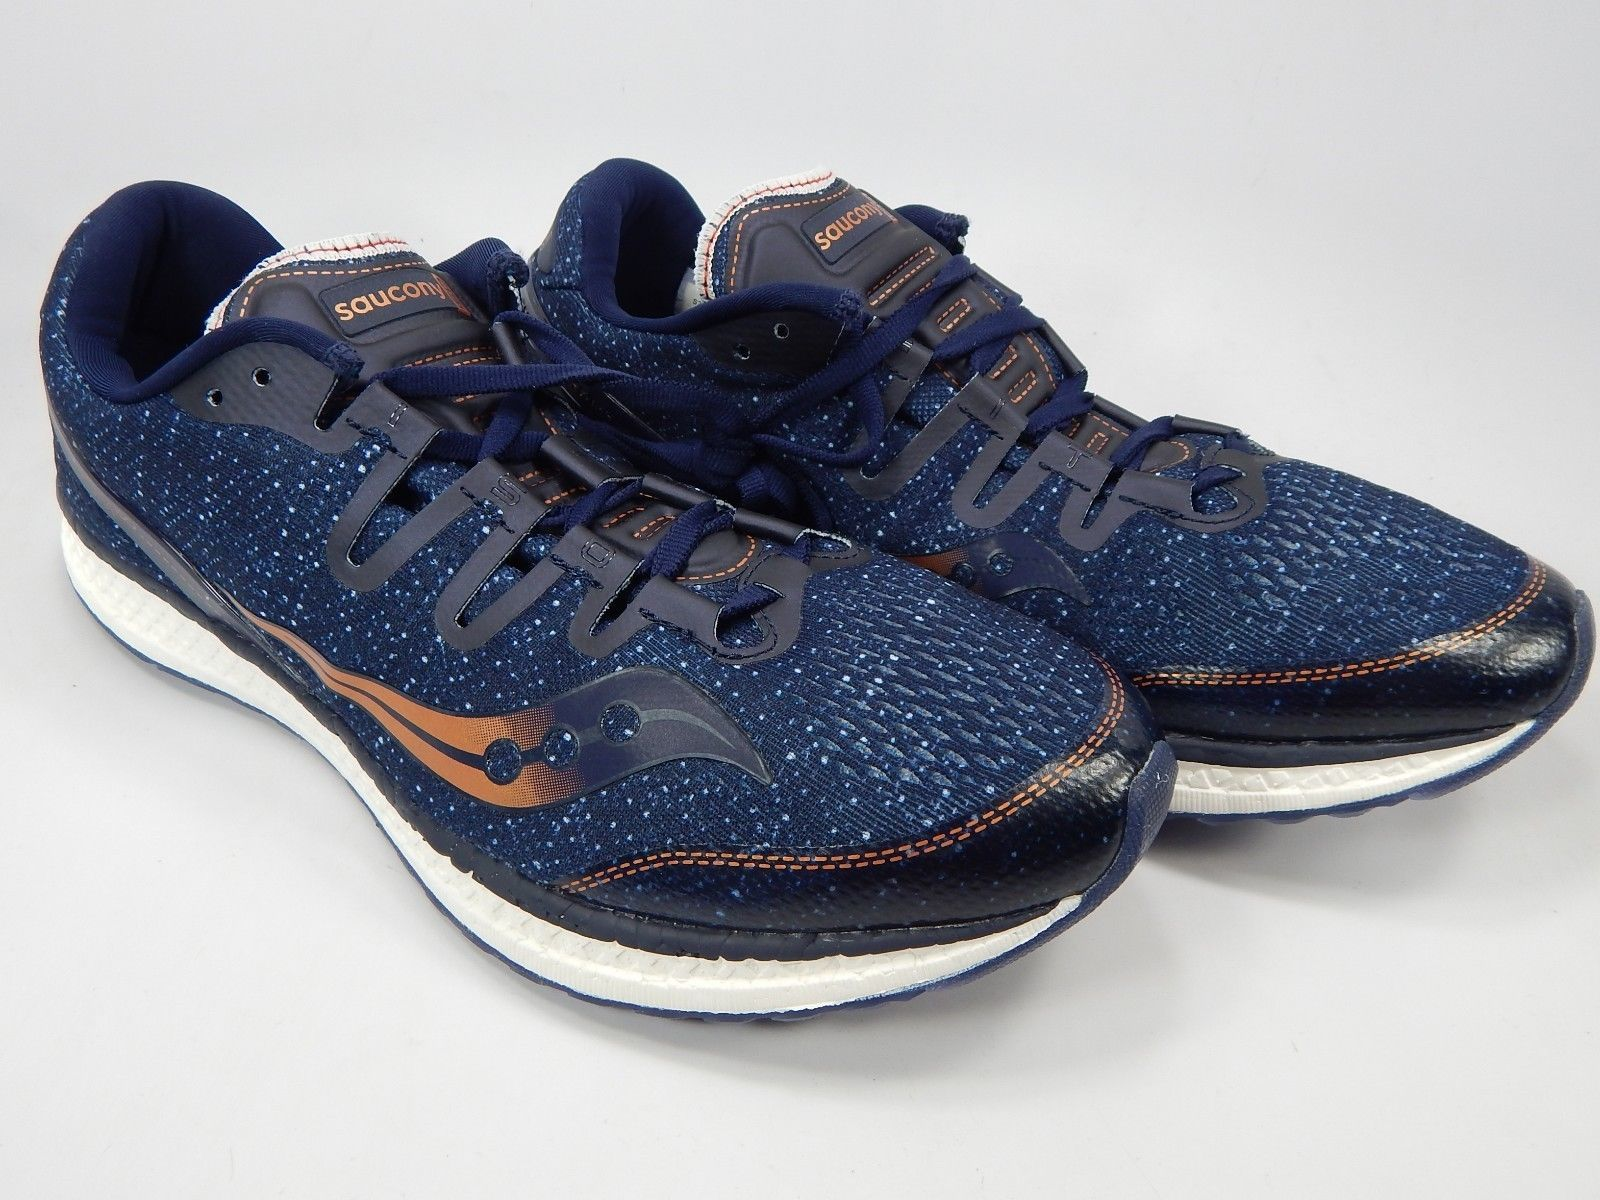 Saucony Freedom ISO Size US 11.5 M (D) EU 46 Men's Running Shoes Blue S20355-30